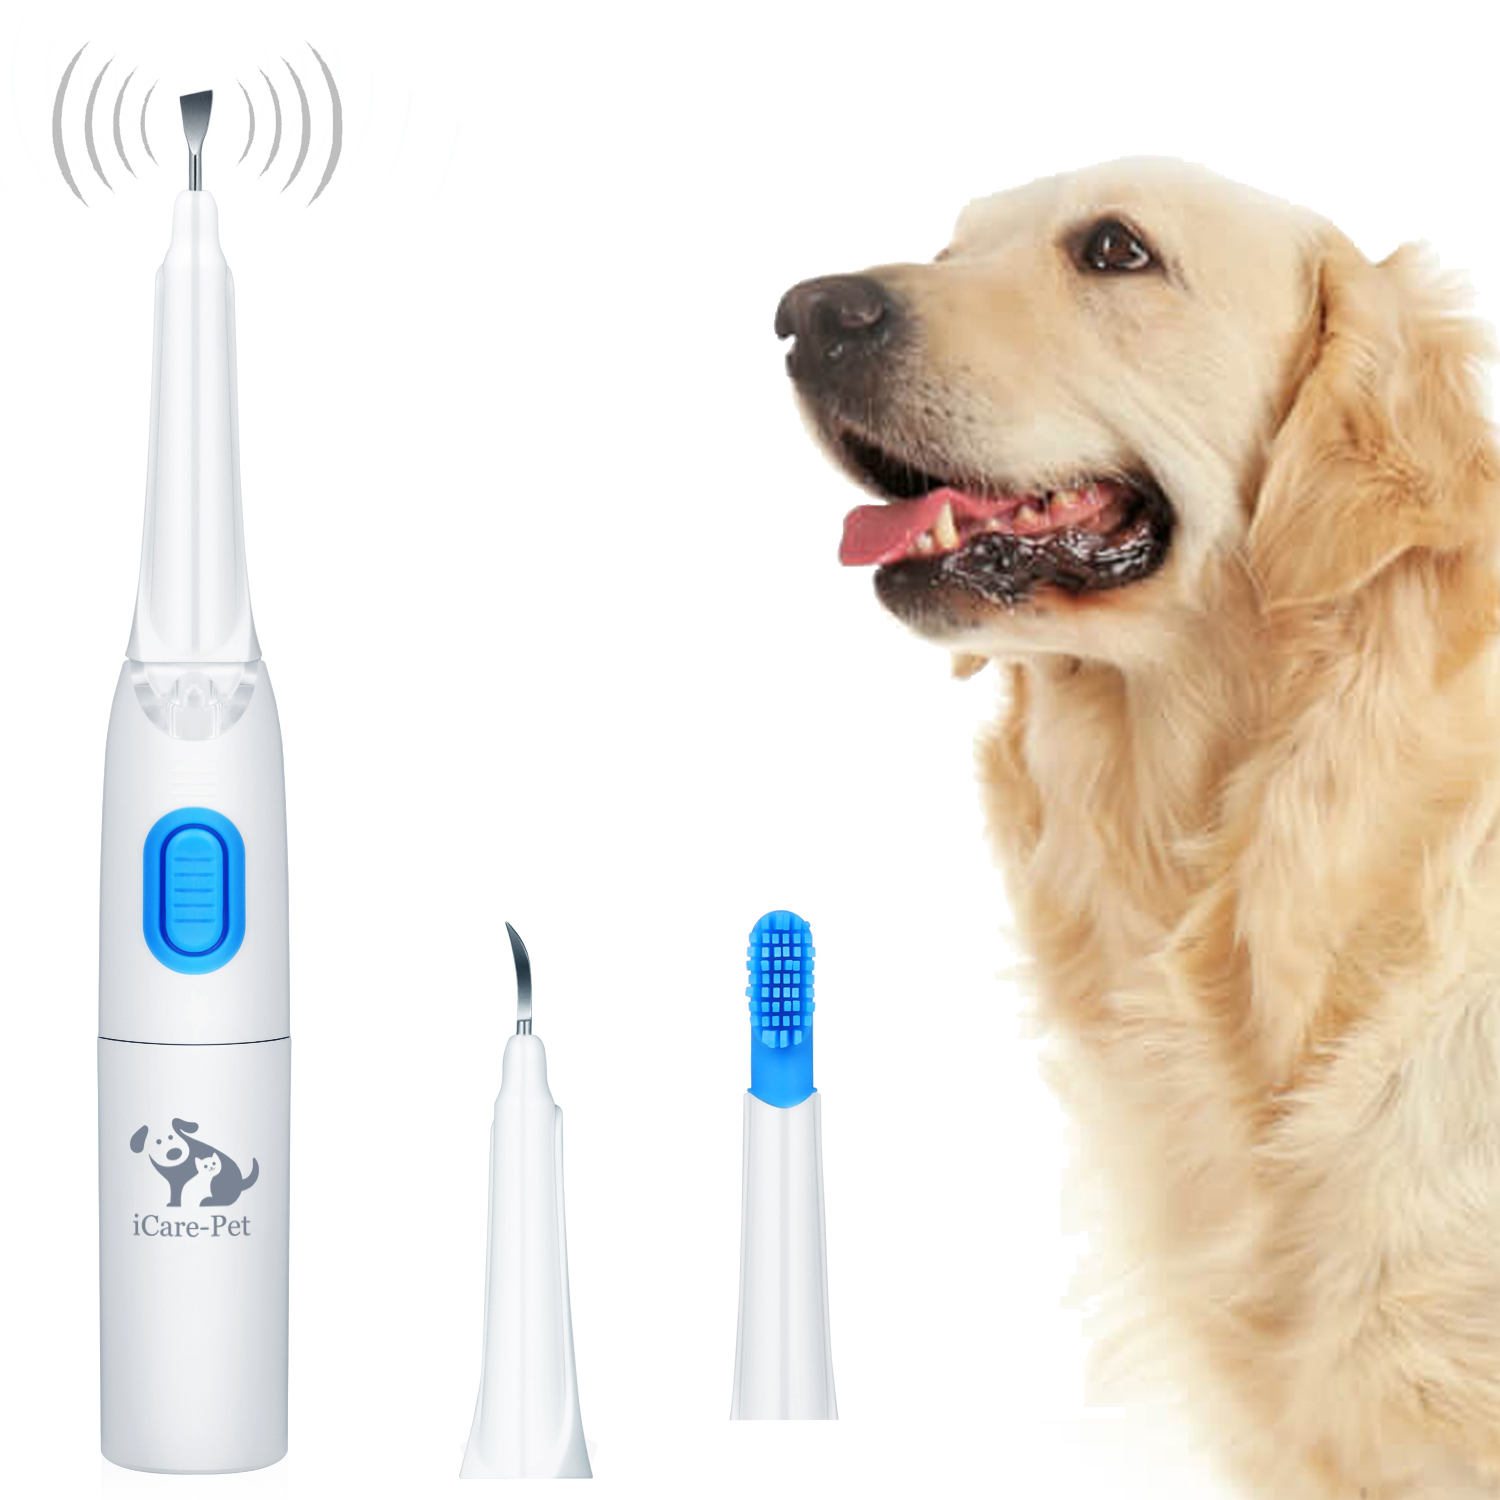 Dog Toothbrush Ultrasonic Toothbrush Dental Calculus Teeth Cleaner LED Light Home & Clinic Use Electric Dog Toothbrush